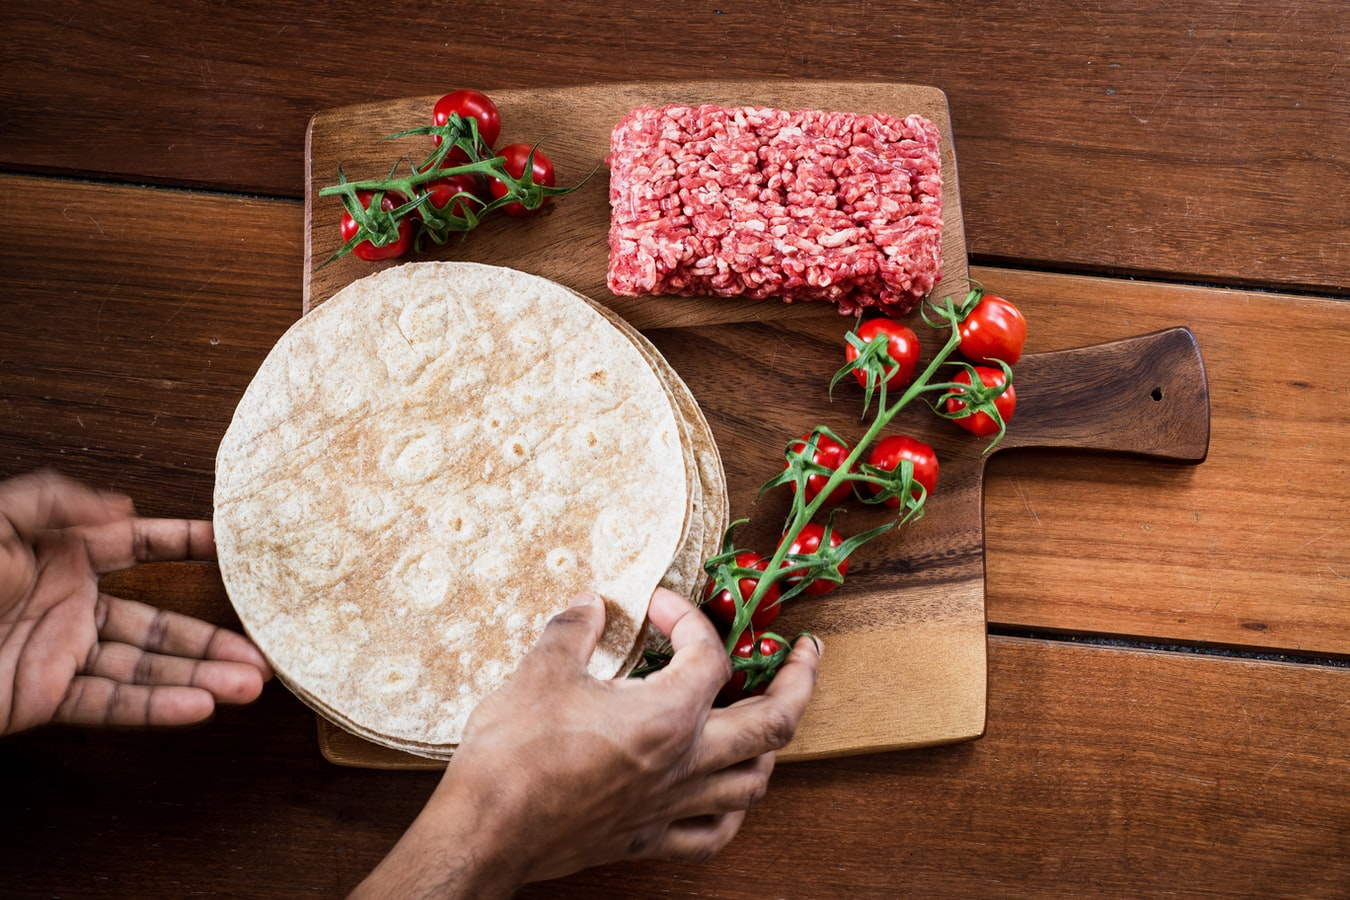 Super Quick And Delicious Ways to Turn Tortillas Into Meals